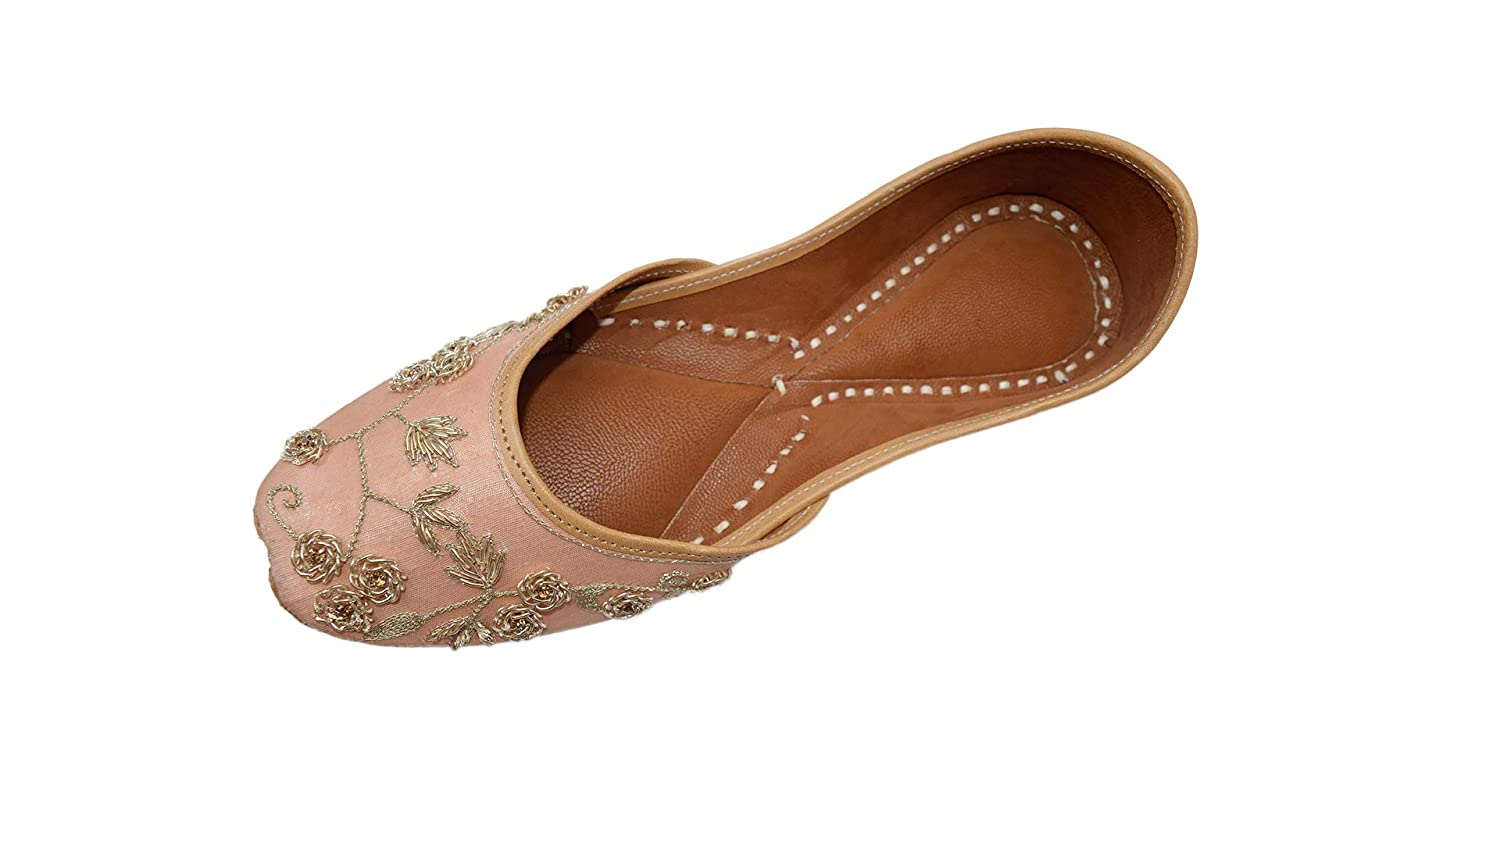 Flamingo The Krafts Indian Ethnic Embroidered Jutti Mojari Ballet Flats Traditional Pump shoes for Women